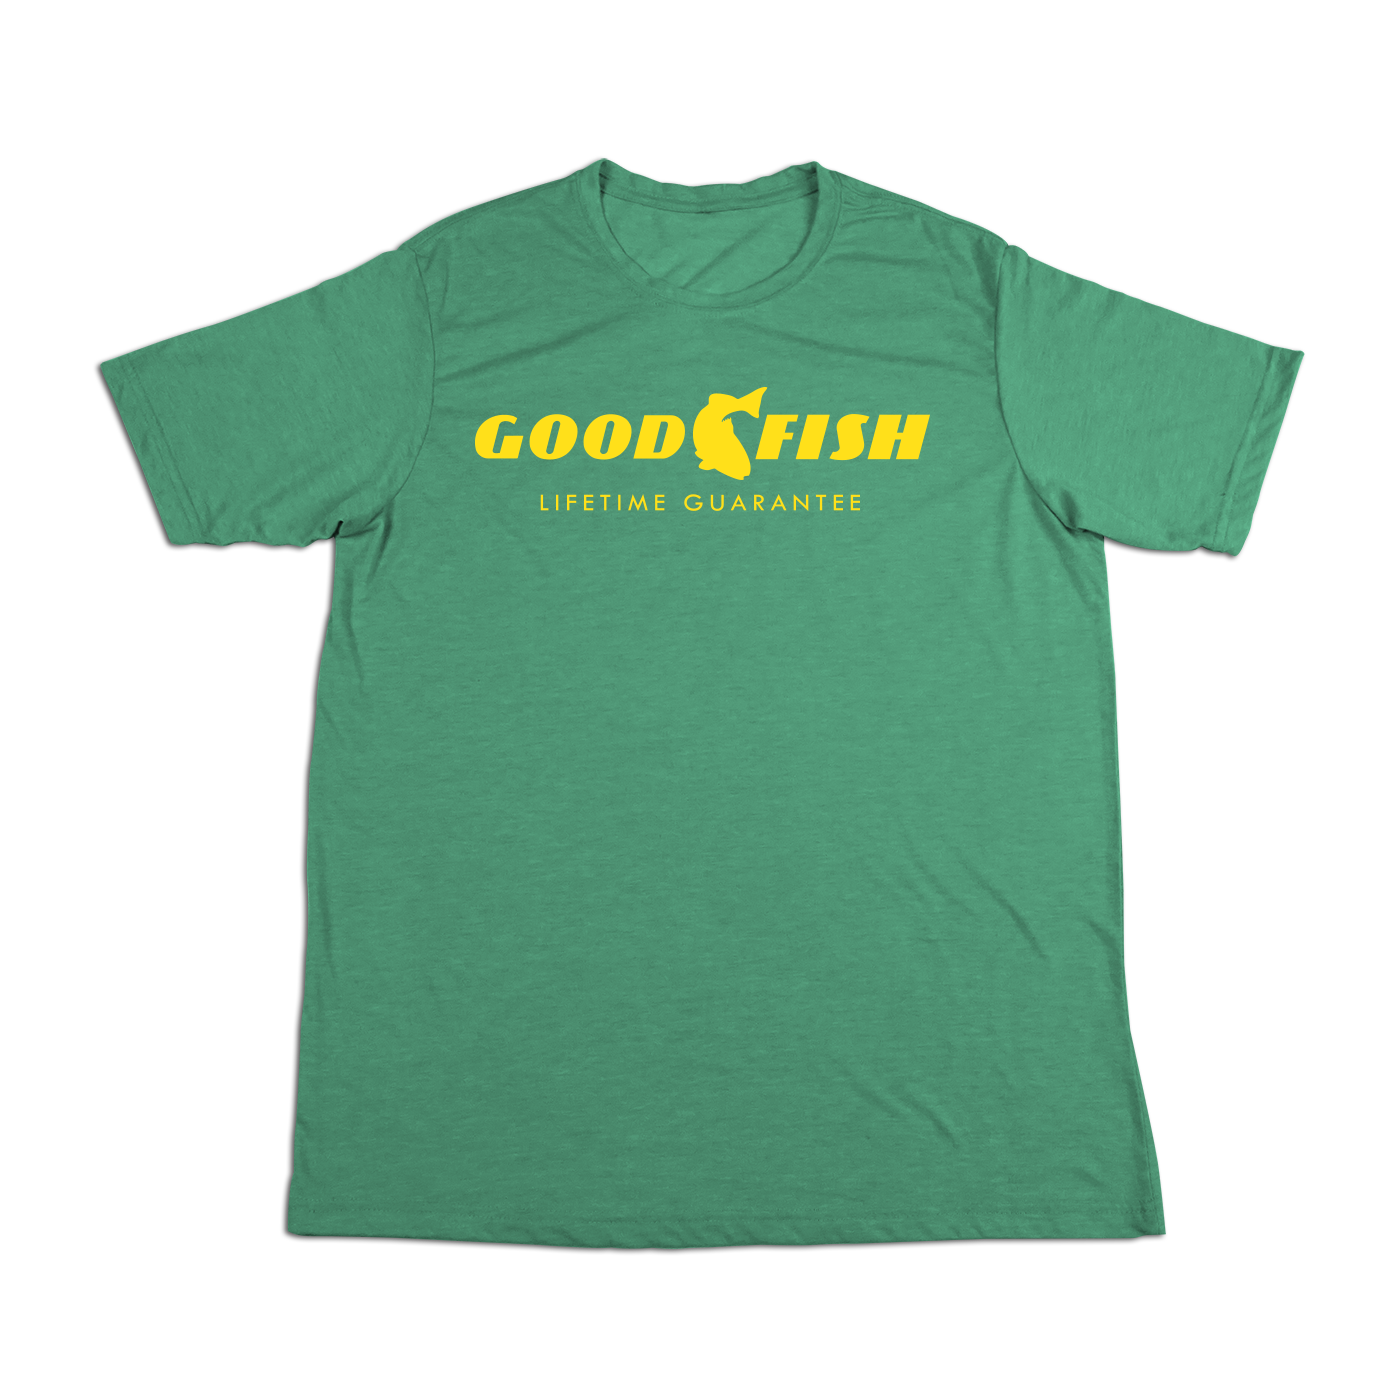 #GOODFISH Soft Short Sleeve Shirt - Yellow - Hat Mount for GoPro